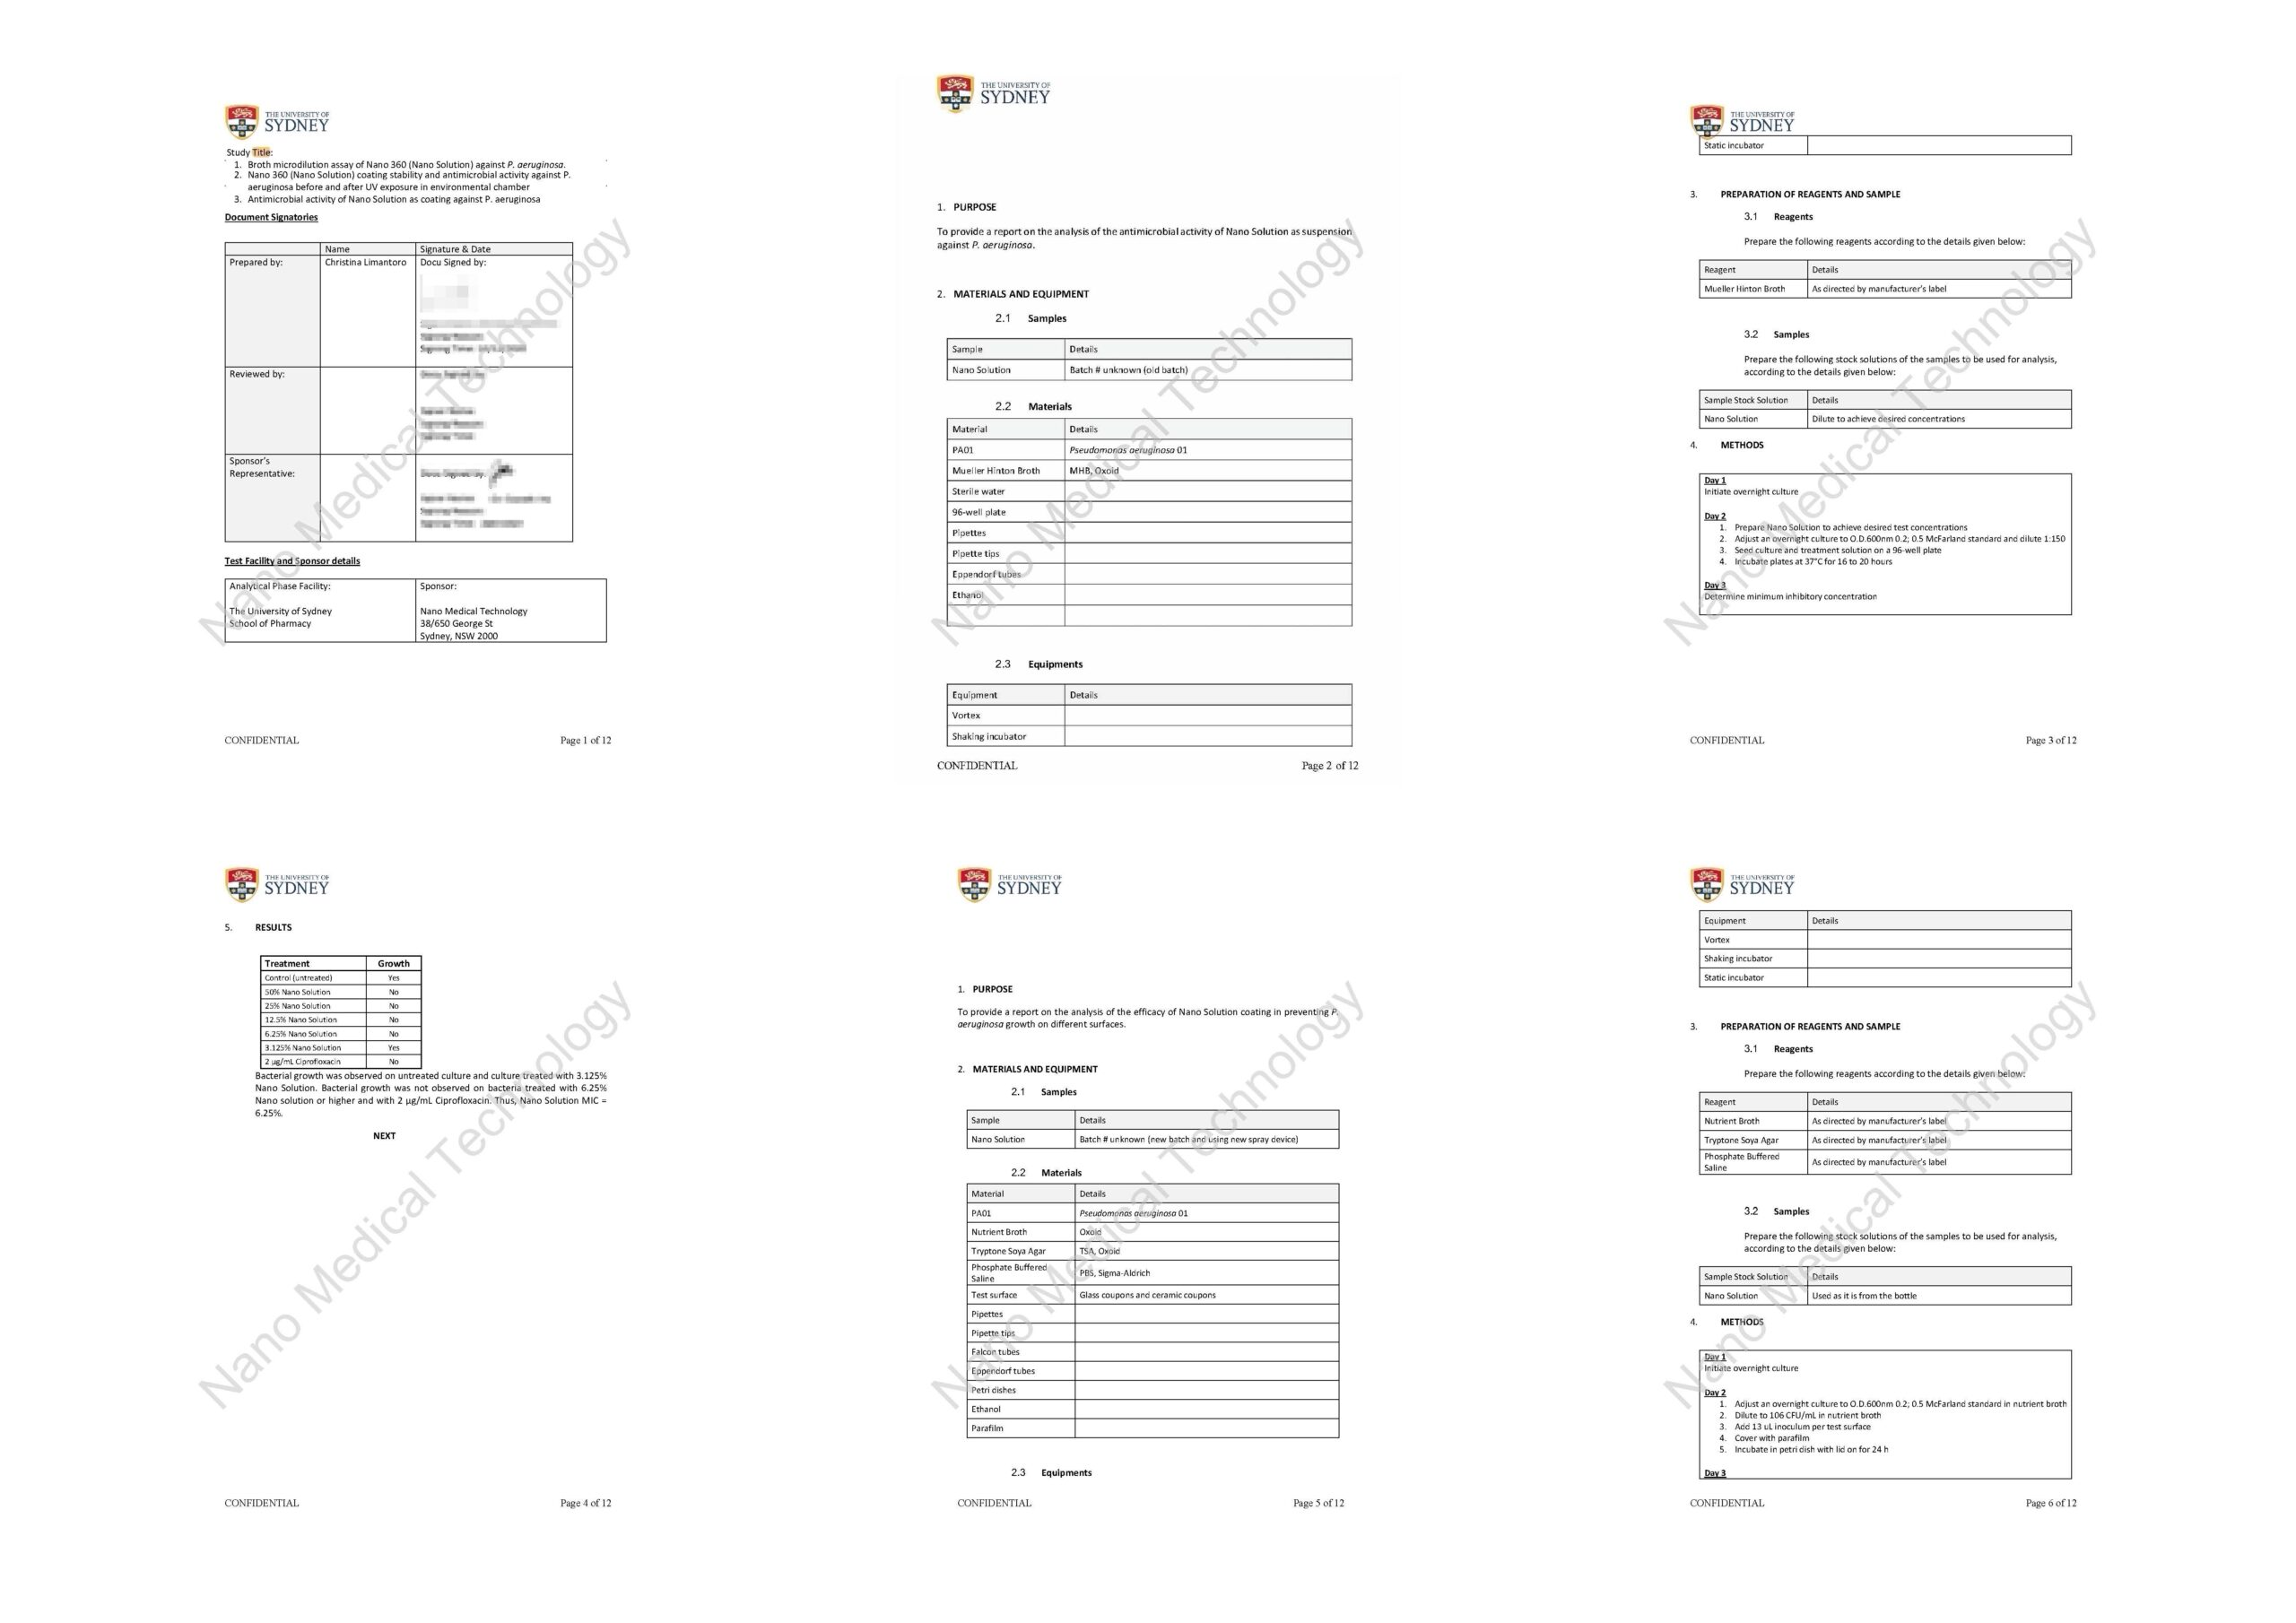 usyd_report_12_Page_1